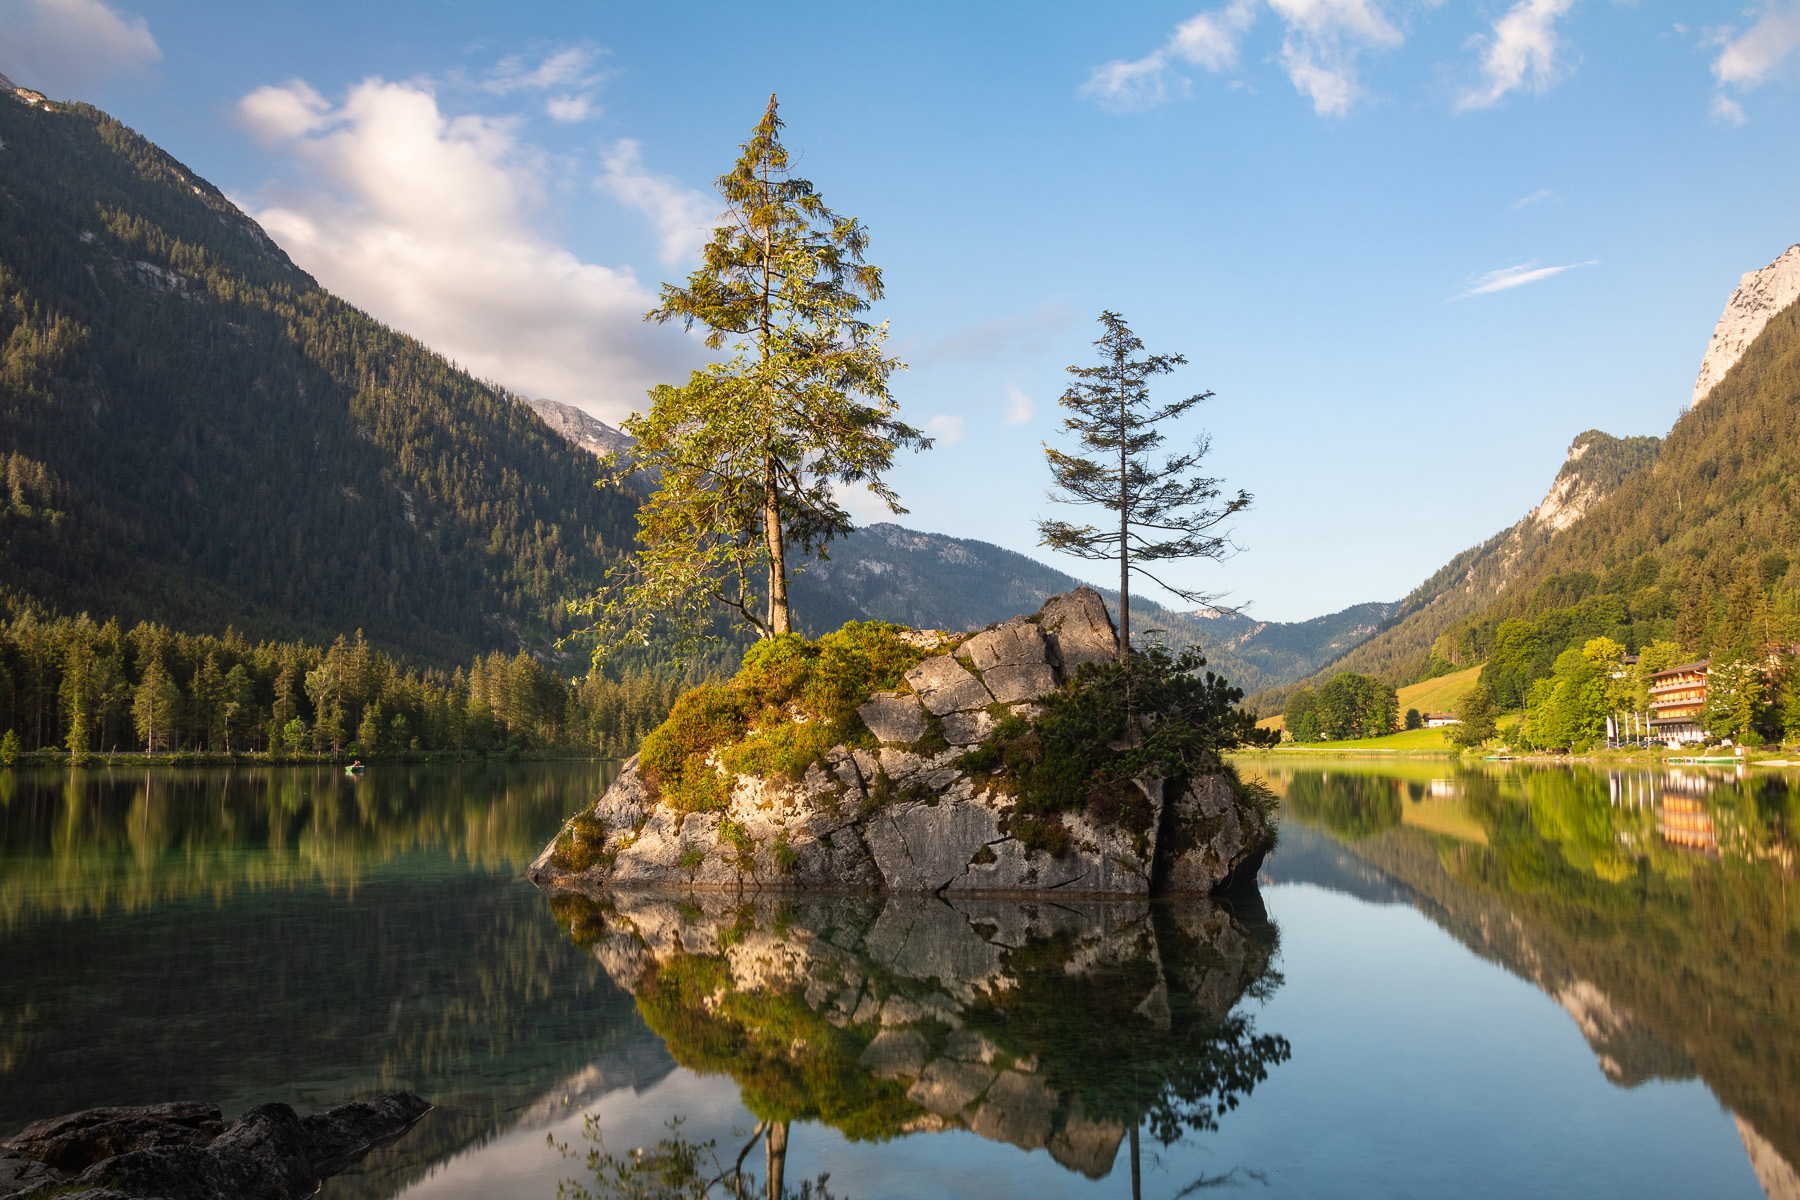 Morning Light on Lake Hintersee